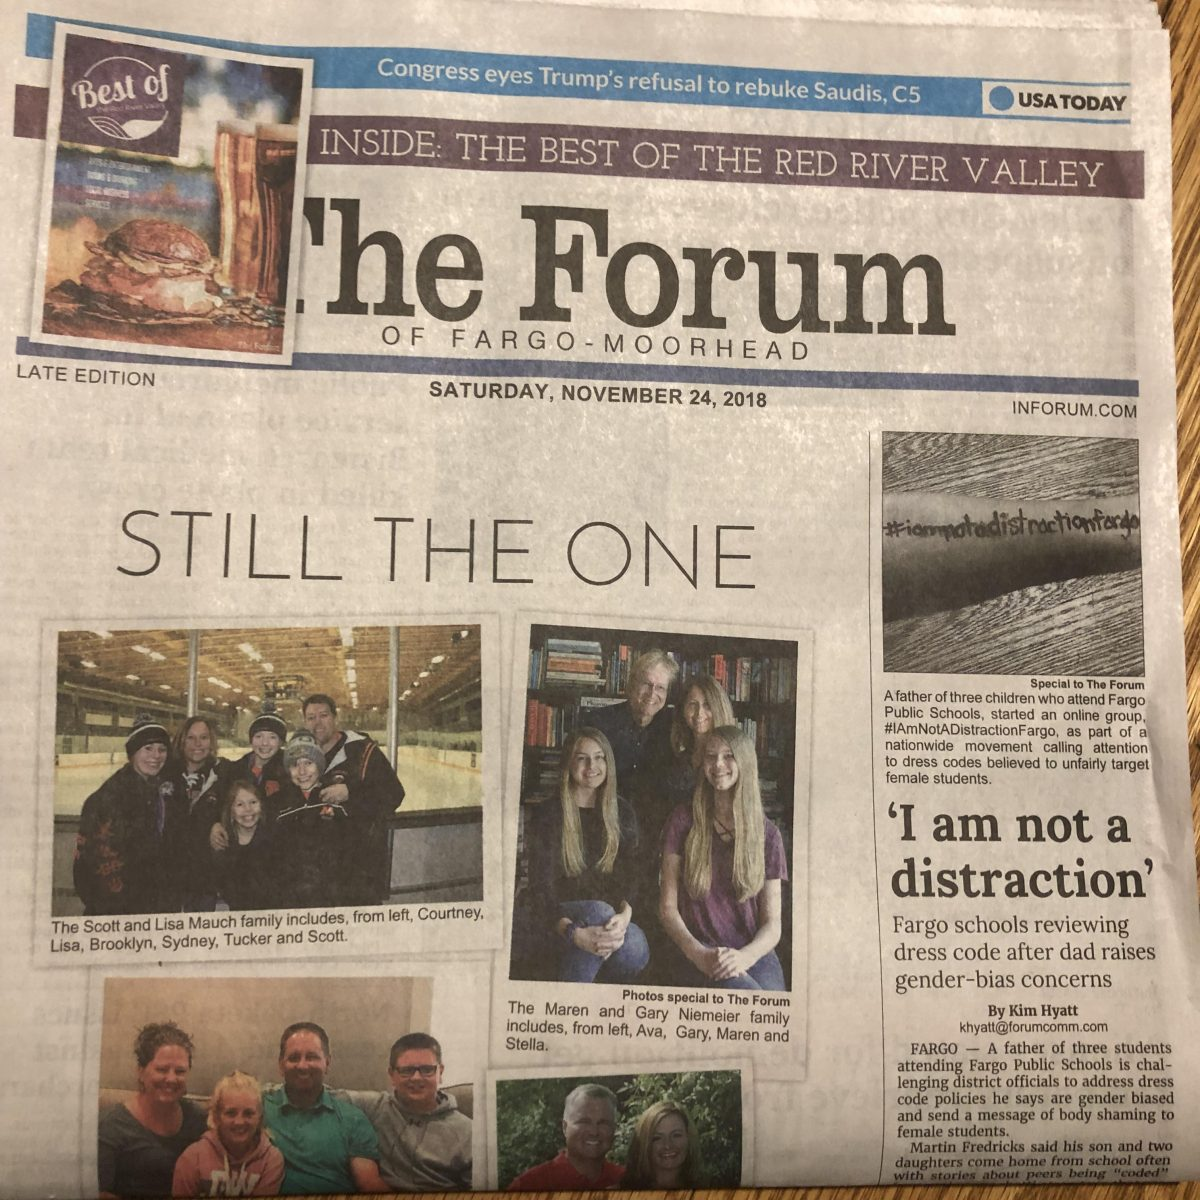 Fargo Newspaper Features Effort to End Body Shaming in Local Public Schools